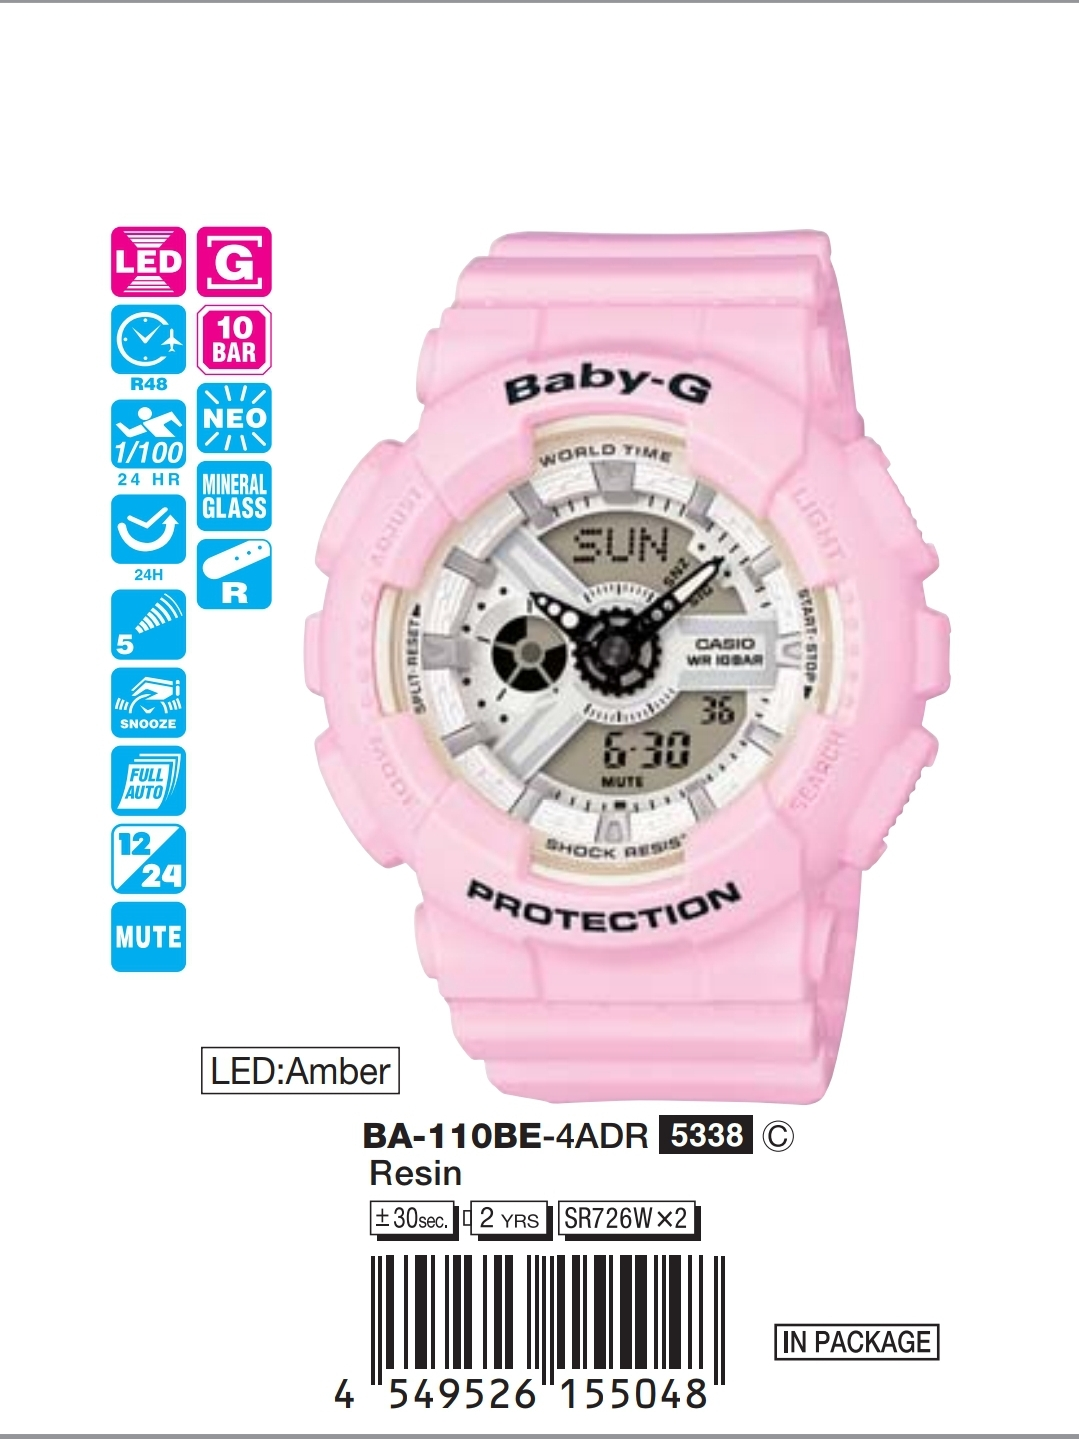 Baby-g watch original